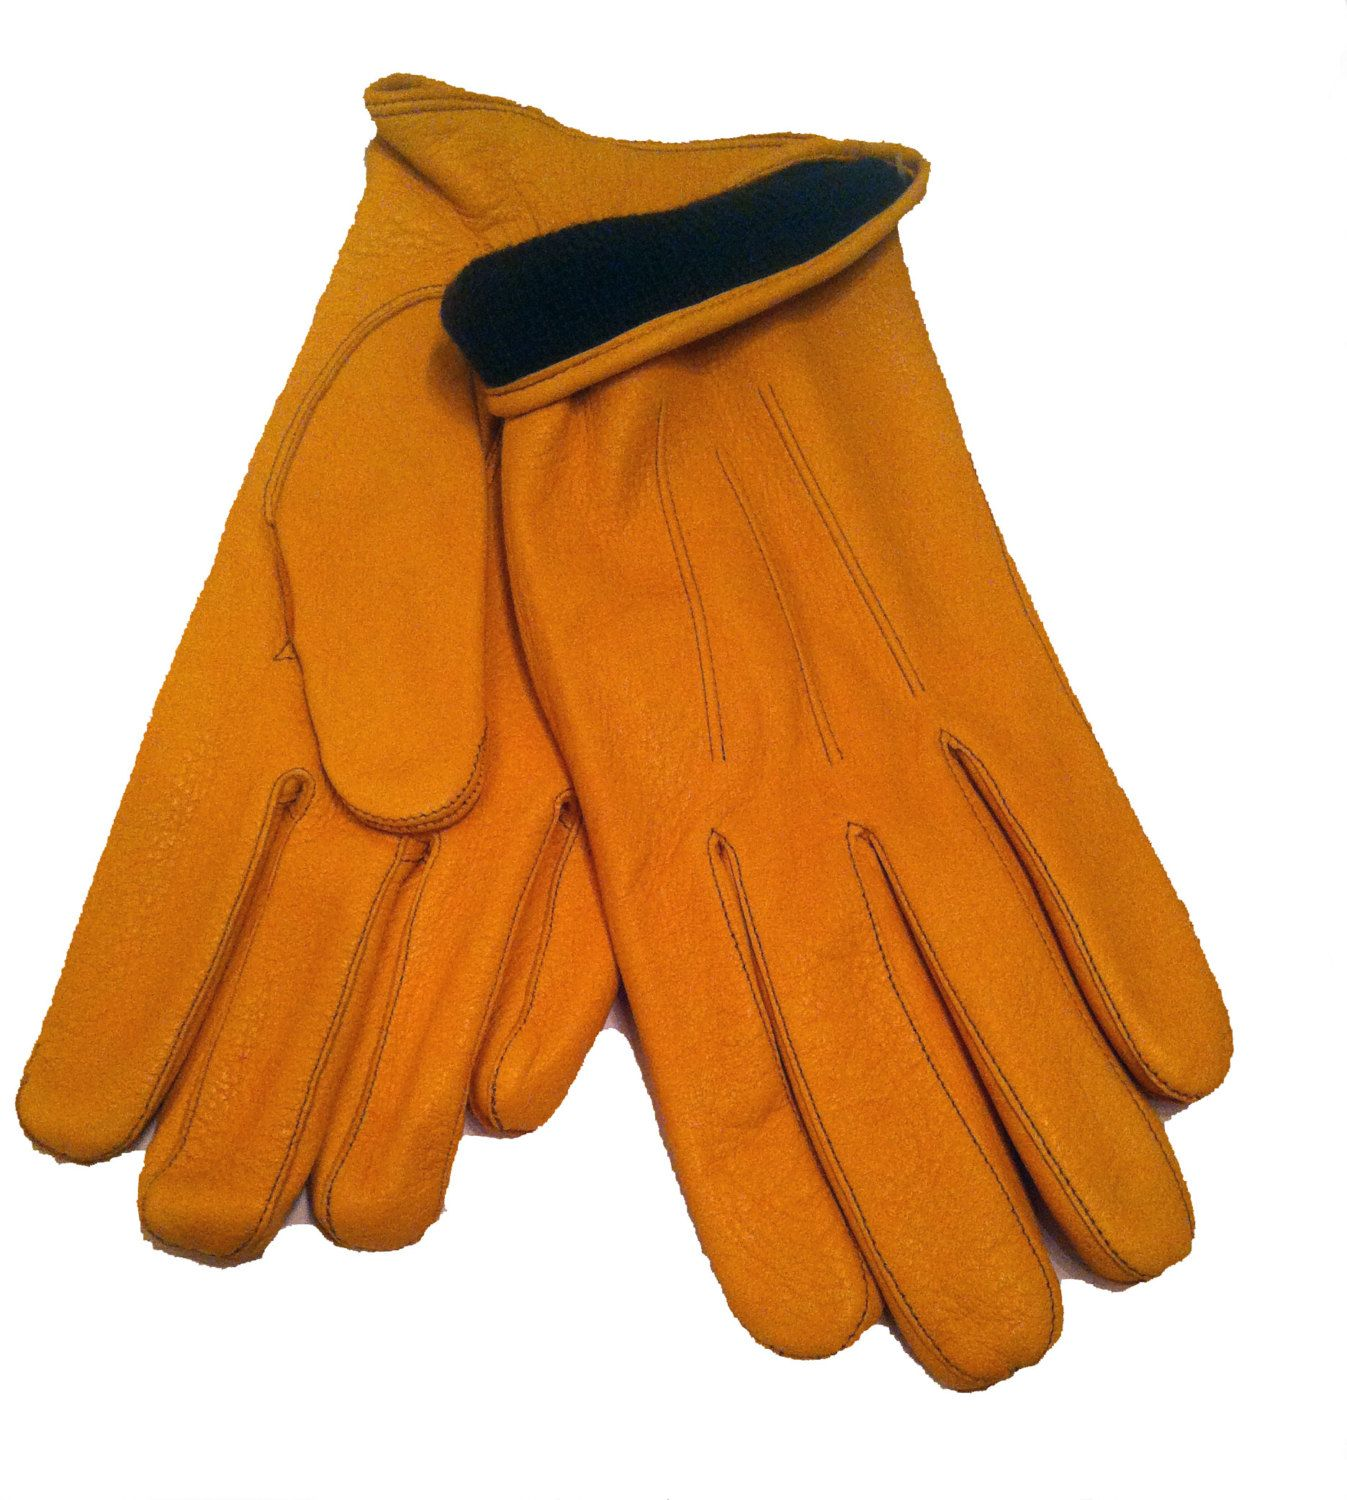 Handmade leather driving gloves - Deer Skin Leather Gloves For Men Driving Gloves Leather Gloves Drive